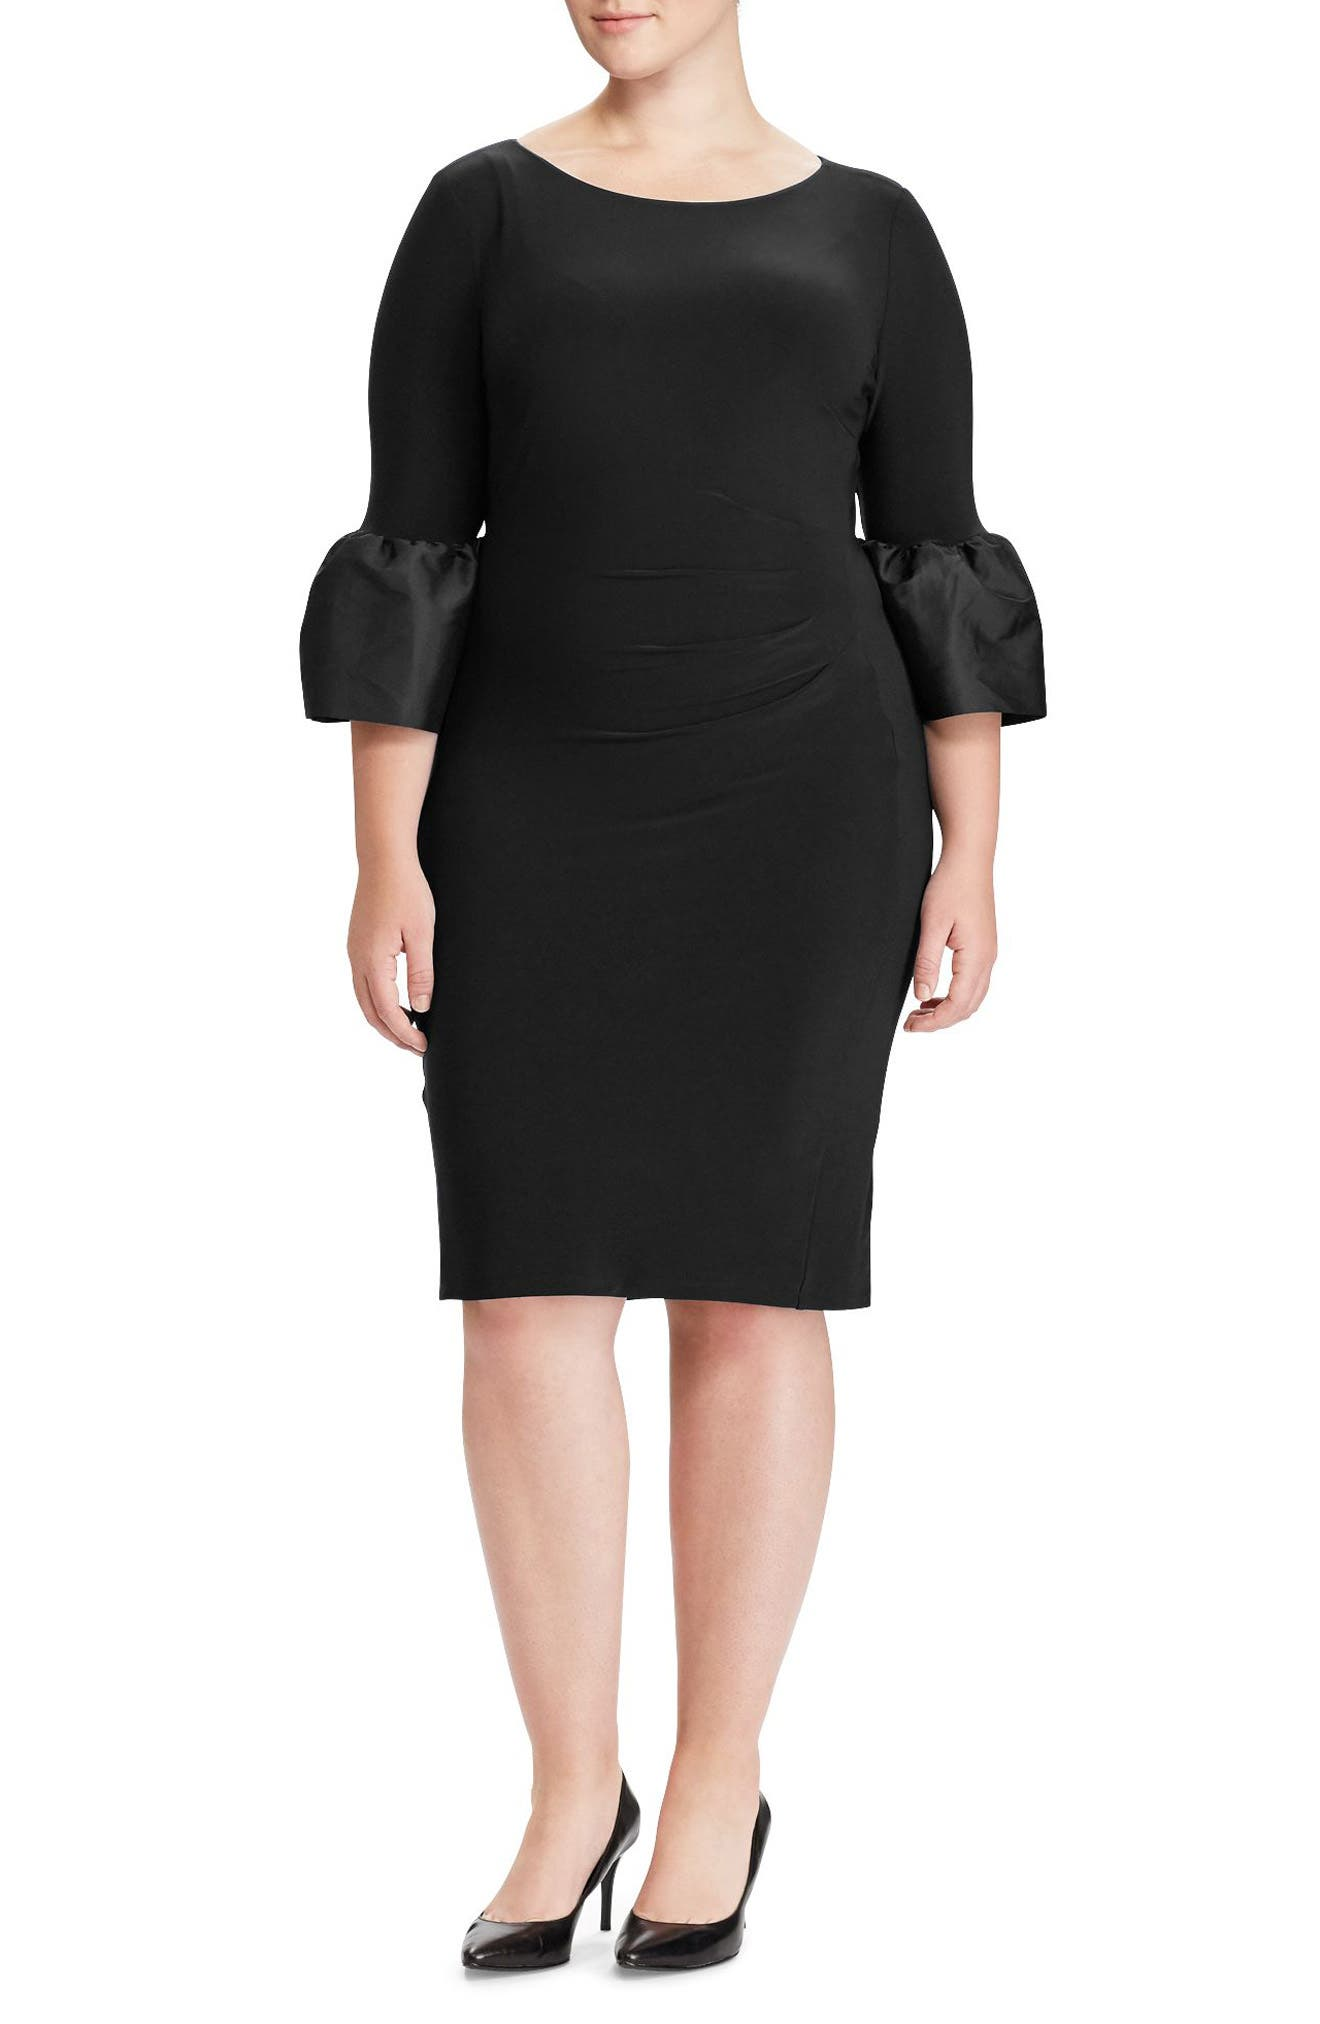 Alternate Image 1 Selected - Lauren Ralph Lauren Taffeta Cuff Jersey Dress (Plus Size)